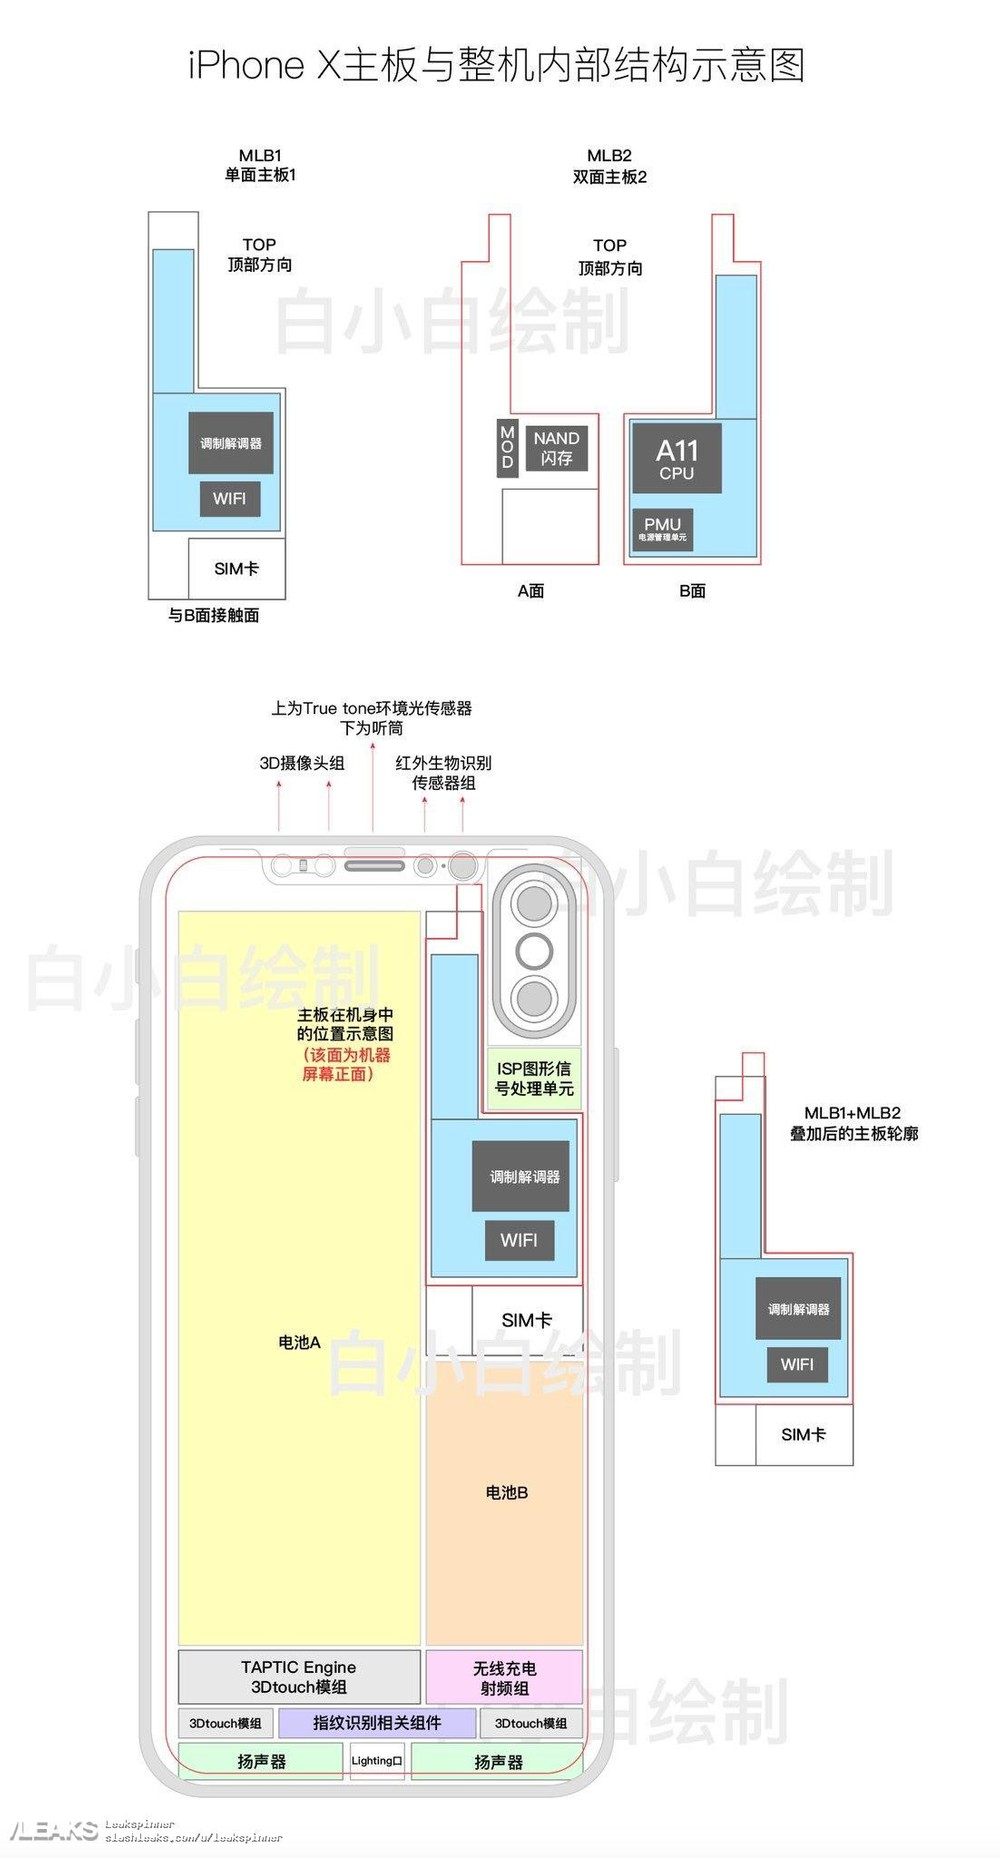 Leaked Internal Schematic Of Iphone 8 Finally Showed Something We 4 Diagram Logic Board Also This Alleged The Adds A Bit Concreteness To That Previously Stuff Have Been Hearing Isnt